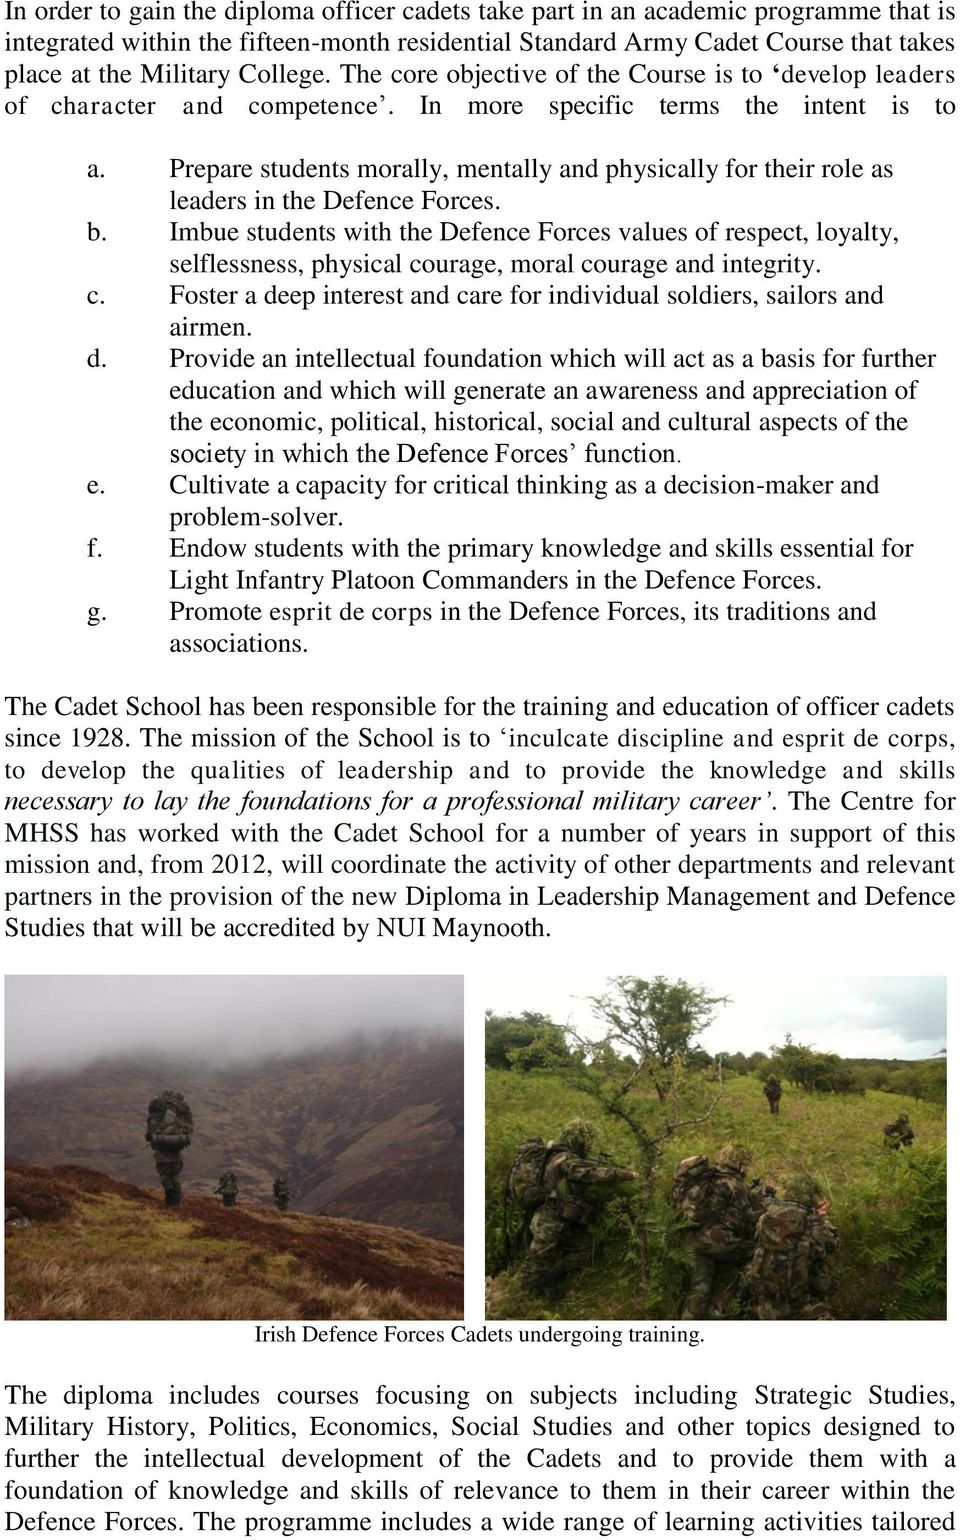 Prepare students morally, mentally and physically for their role as leaders in the Defence Forces. b.